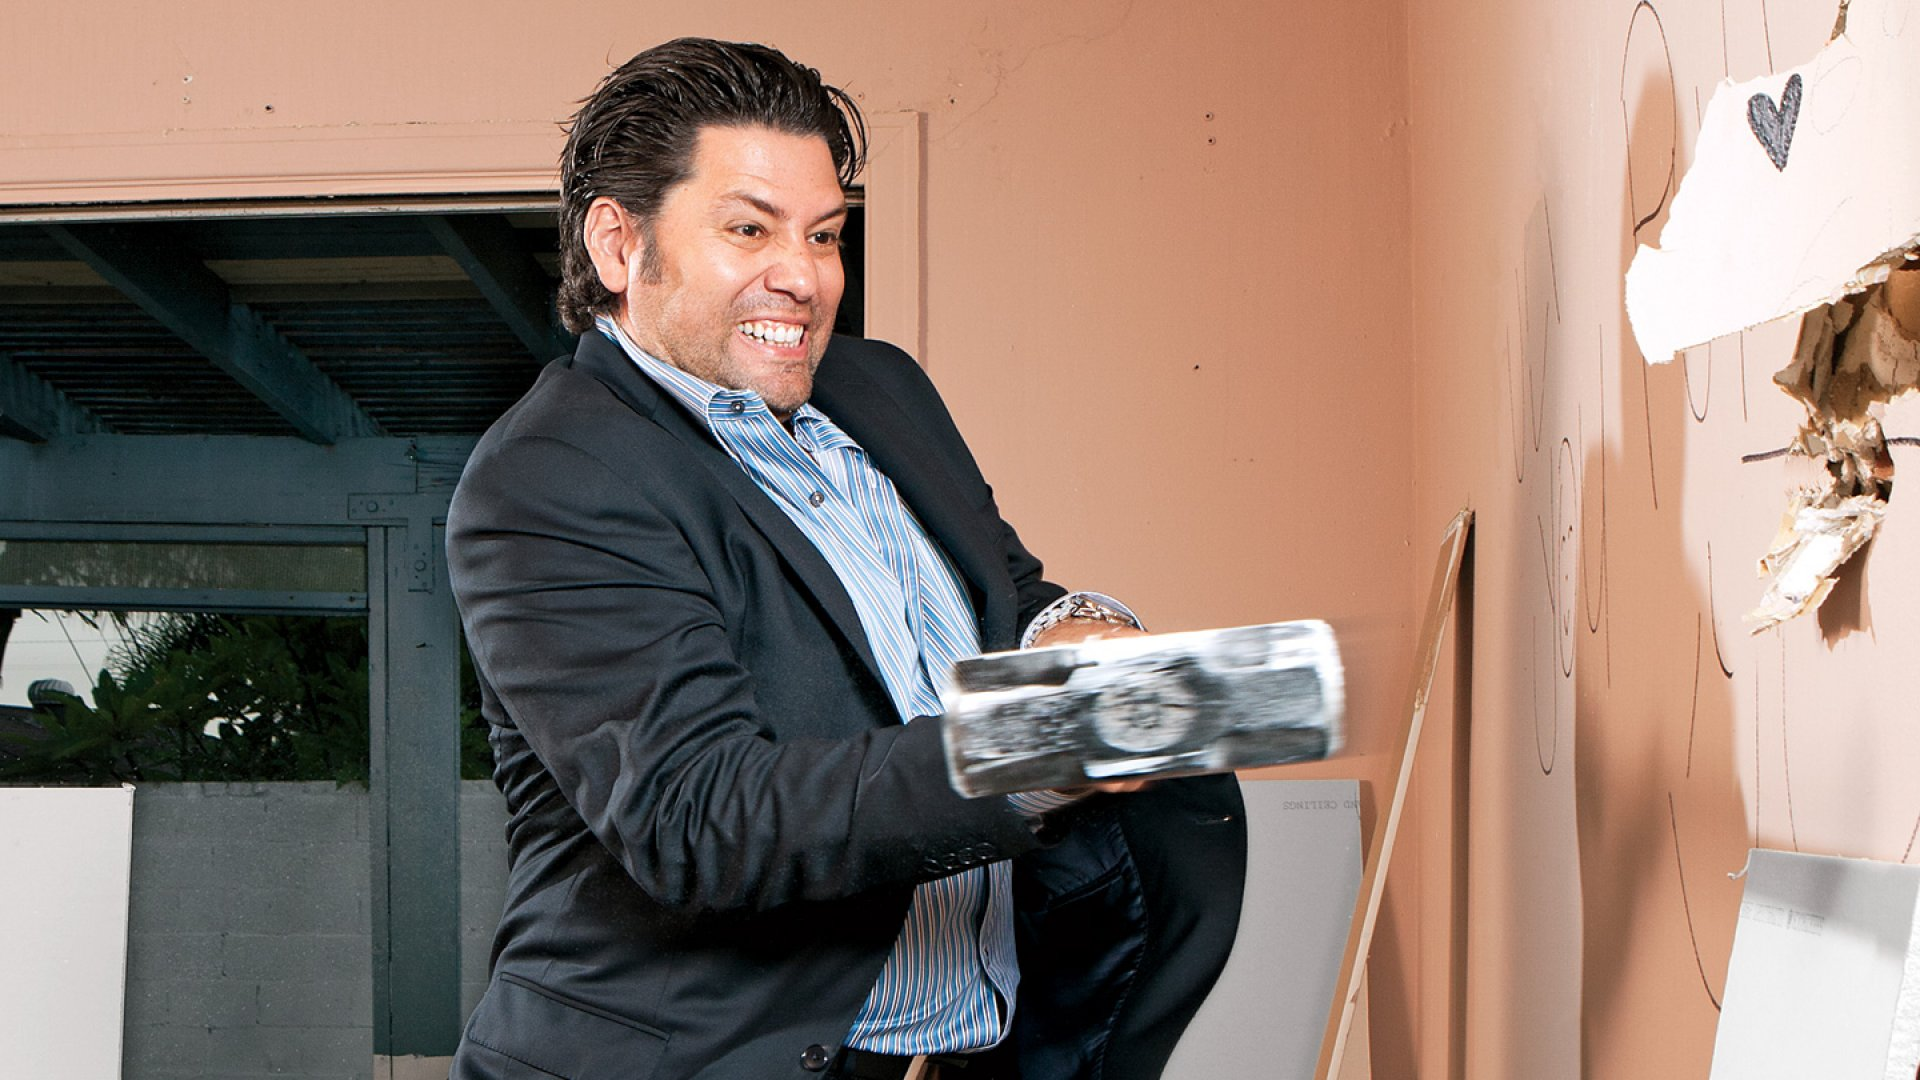 <b>Hit It</b> Armando Montelongo gets back to his roots in business.